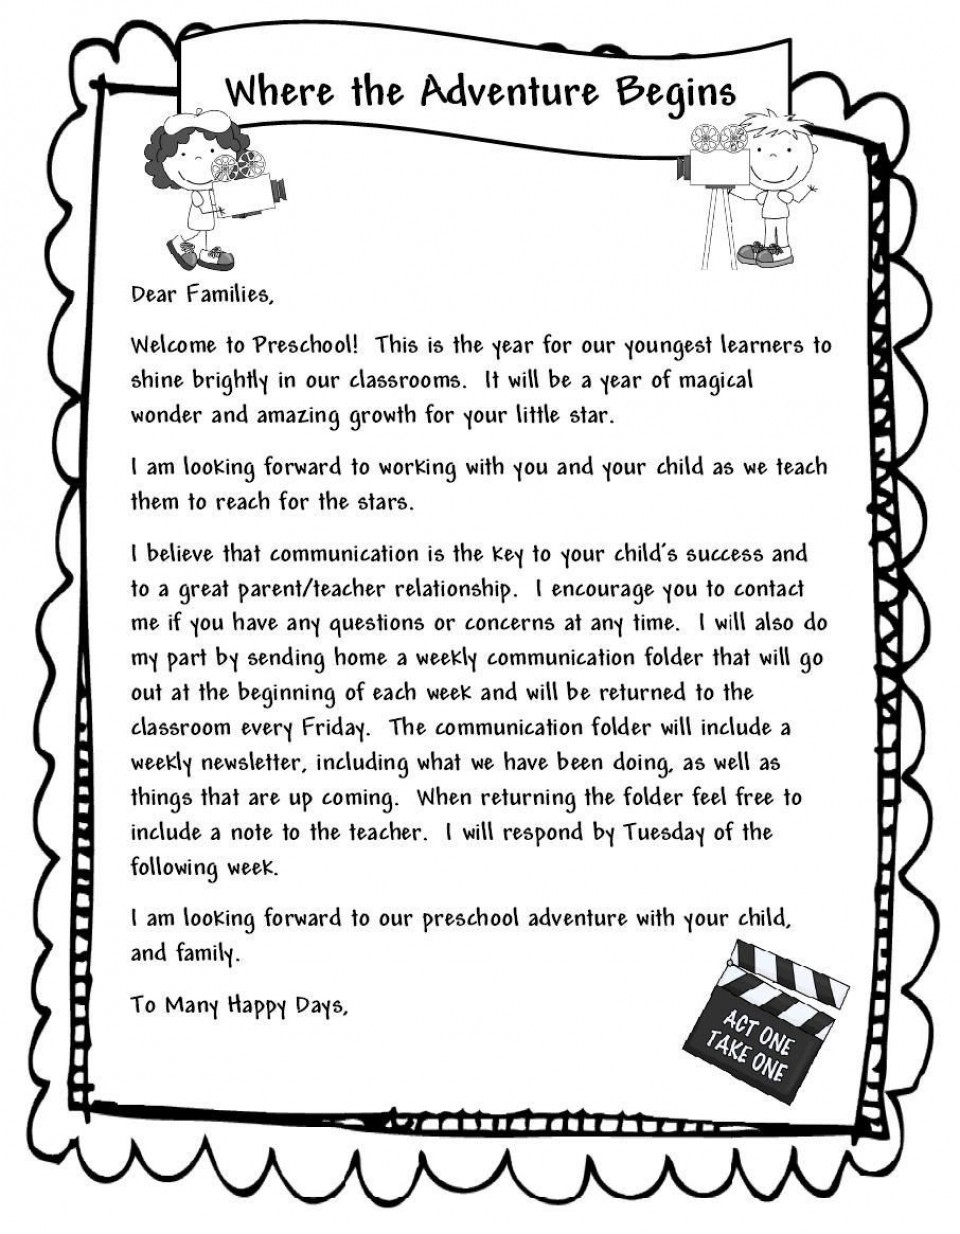 000 Unbelievable Teacher Welcome Letter Template Example  Preschool To Parent From Free960